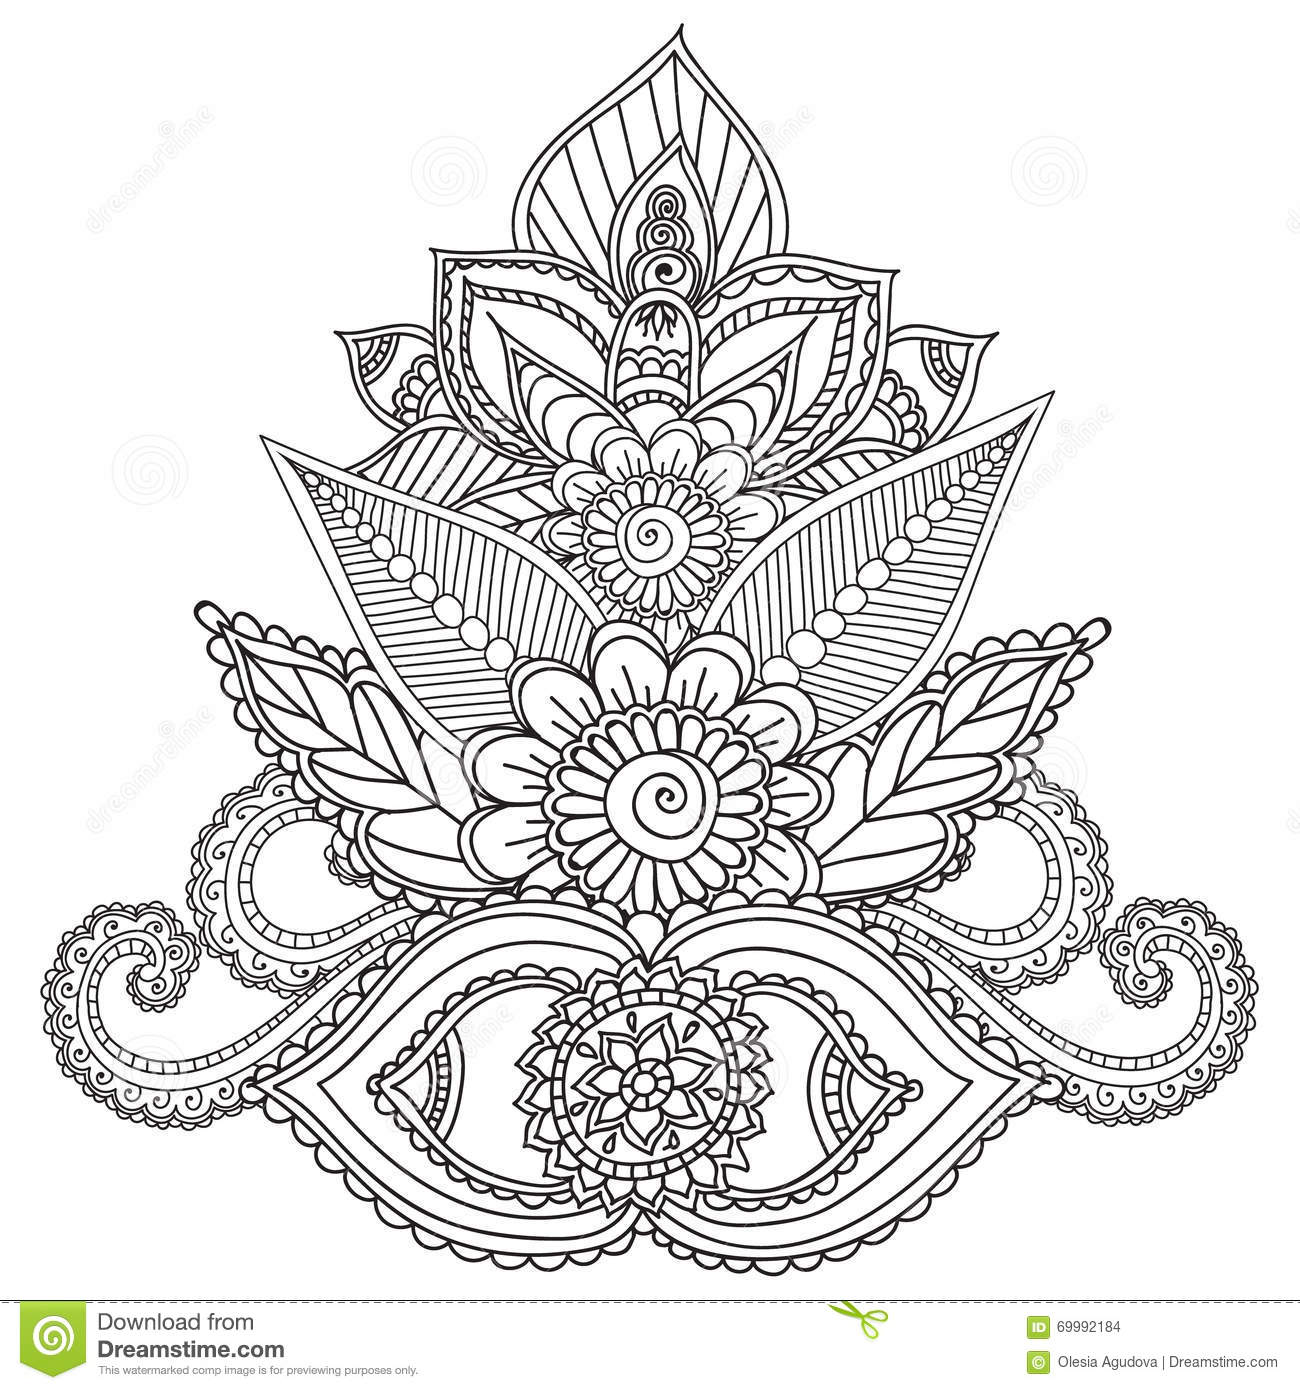 Coloring pages for adults henna mehndi doodles abstract for Henna coloring pages